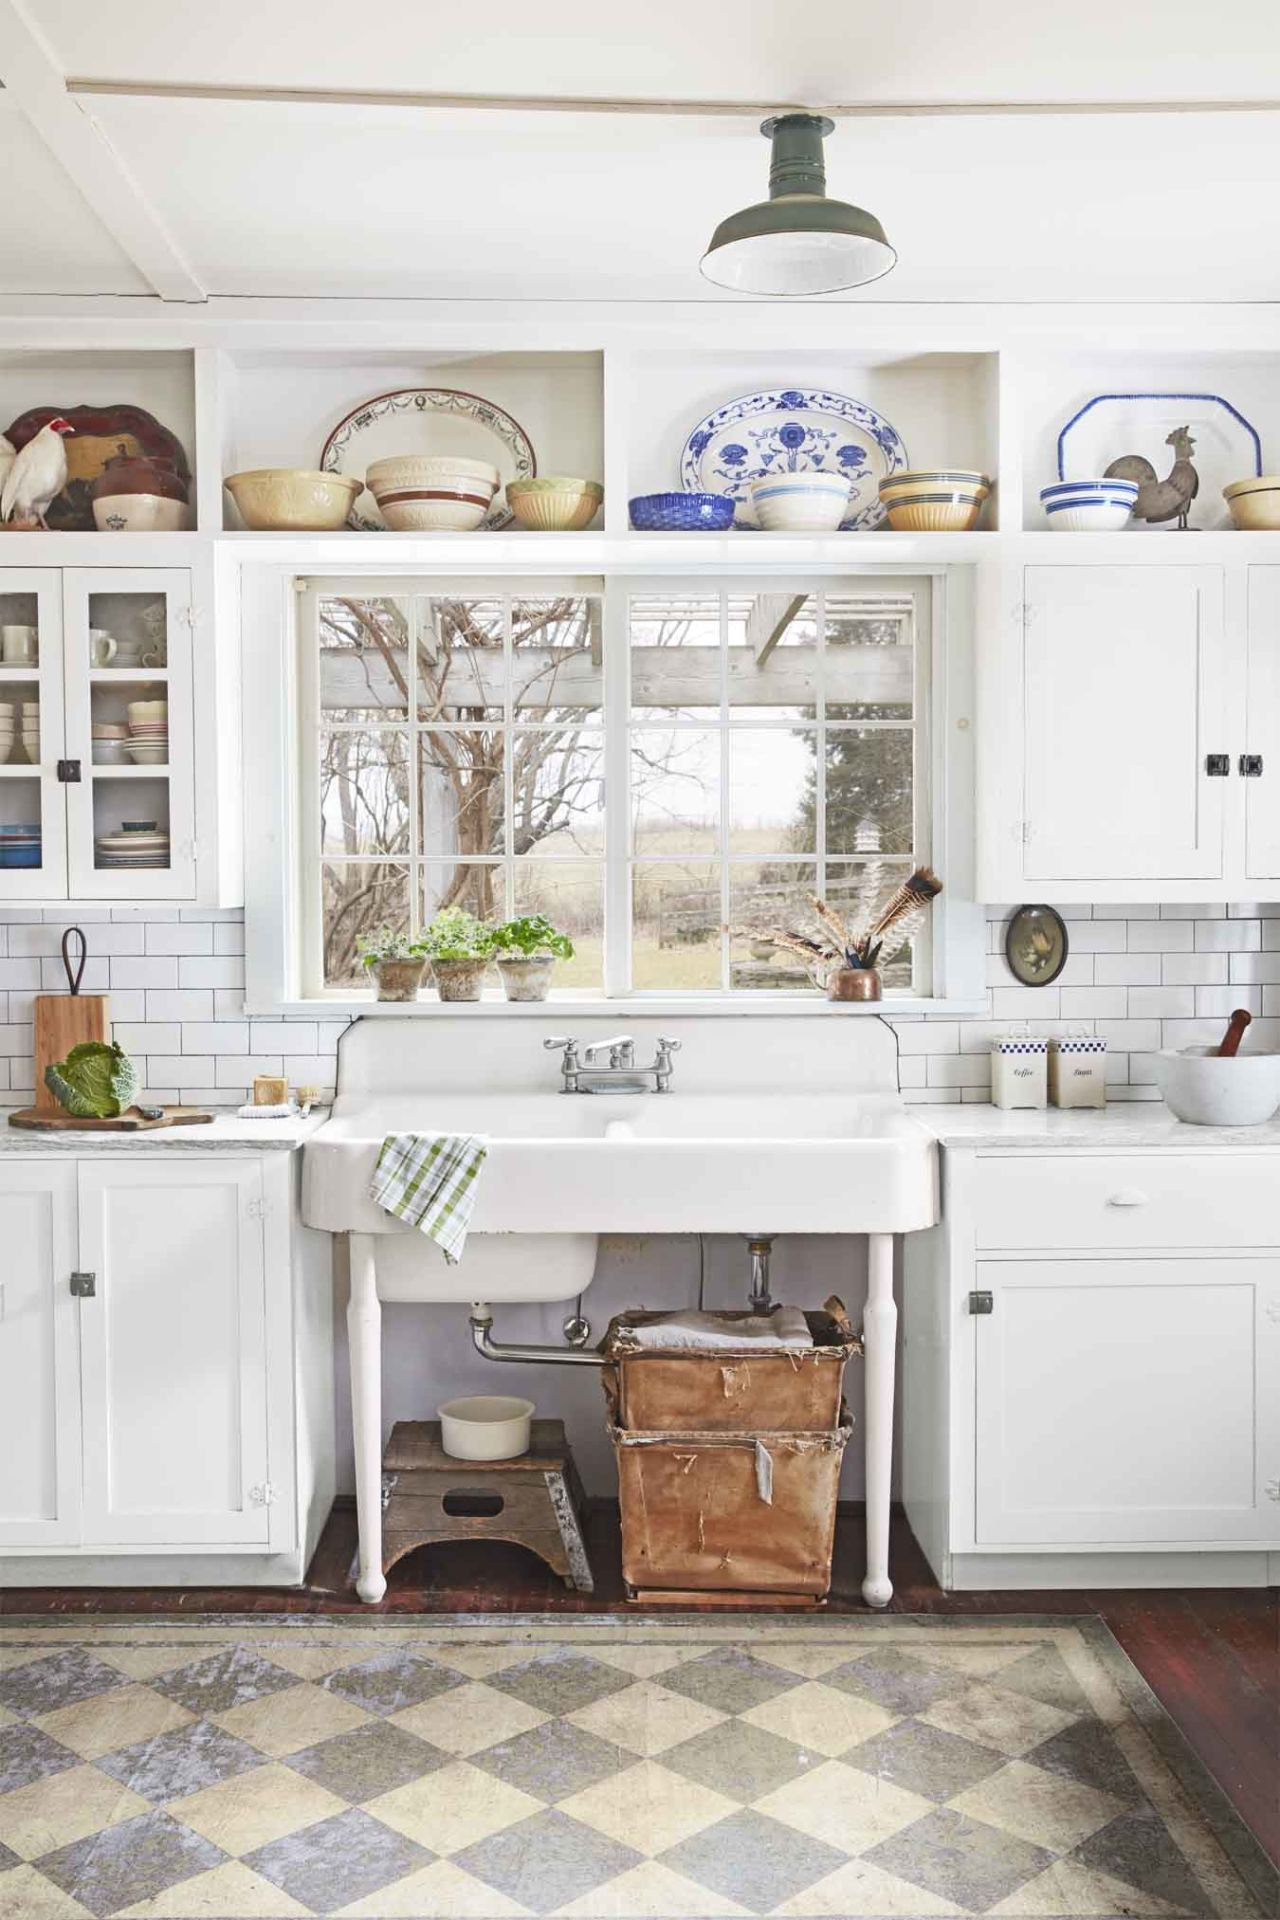 Farmhouse or Apron-Front Sink Rustic Kitchen Cabinets, Kitchen Rustic,  Vintage Sink,